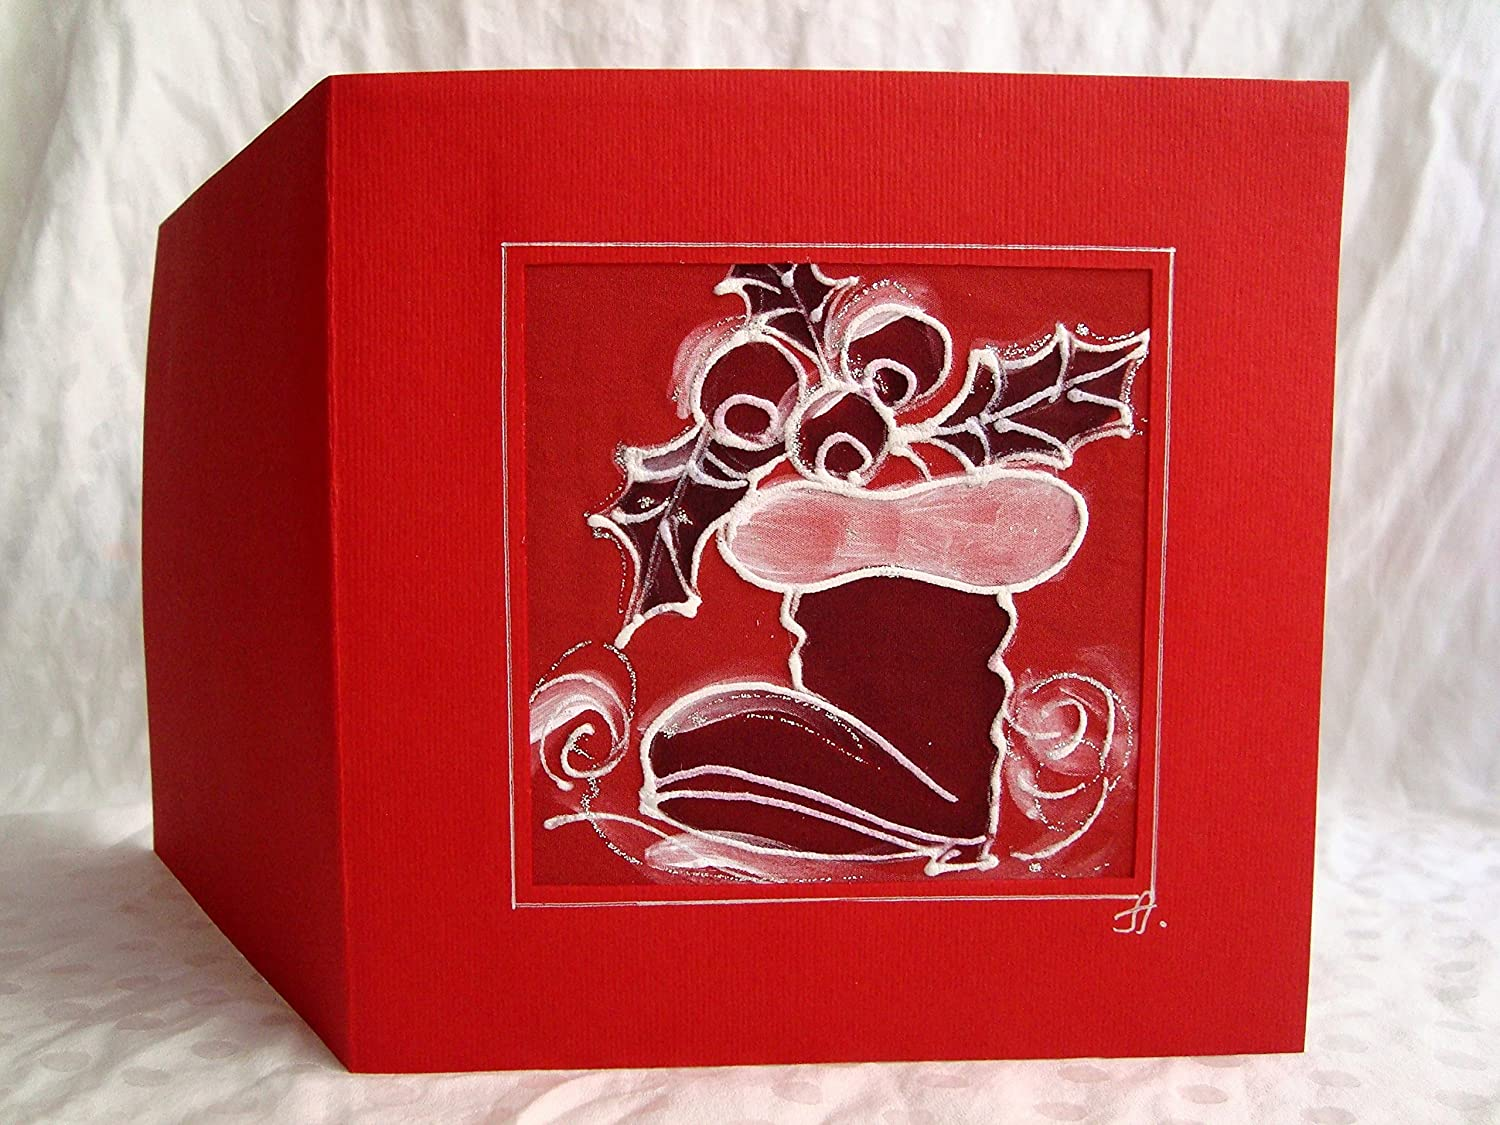 Christmas Boot Hand-Painted Card Painted Hol Max 79% OFF Hand card Free shipping on posting reviews